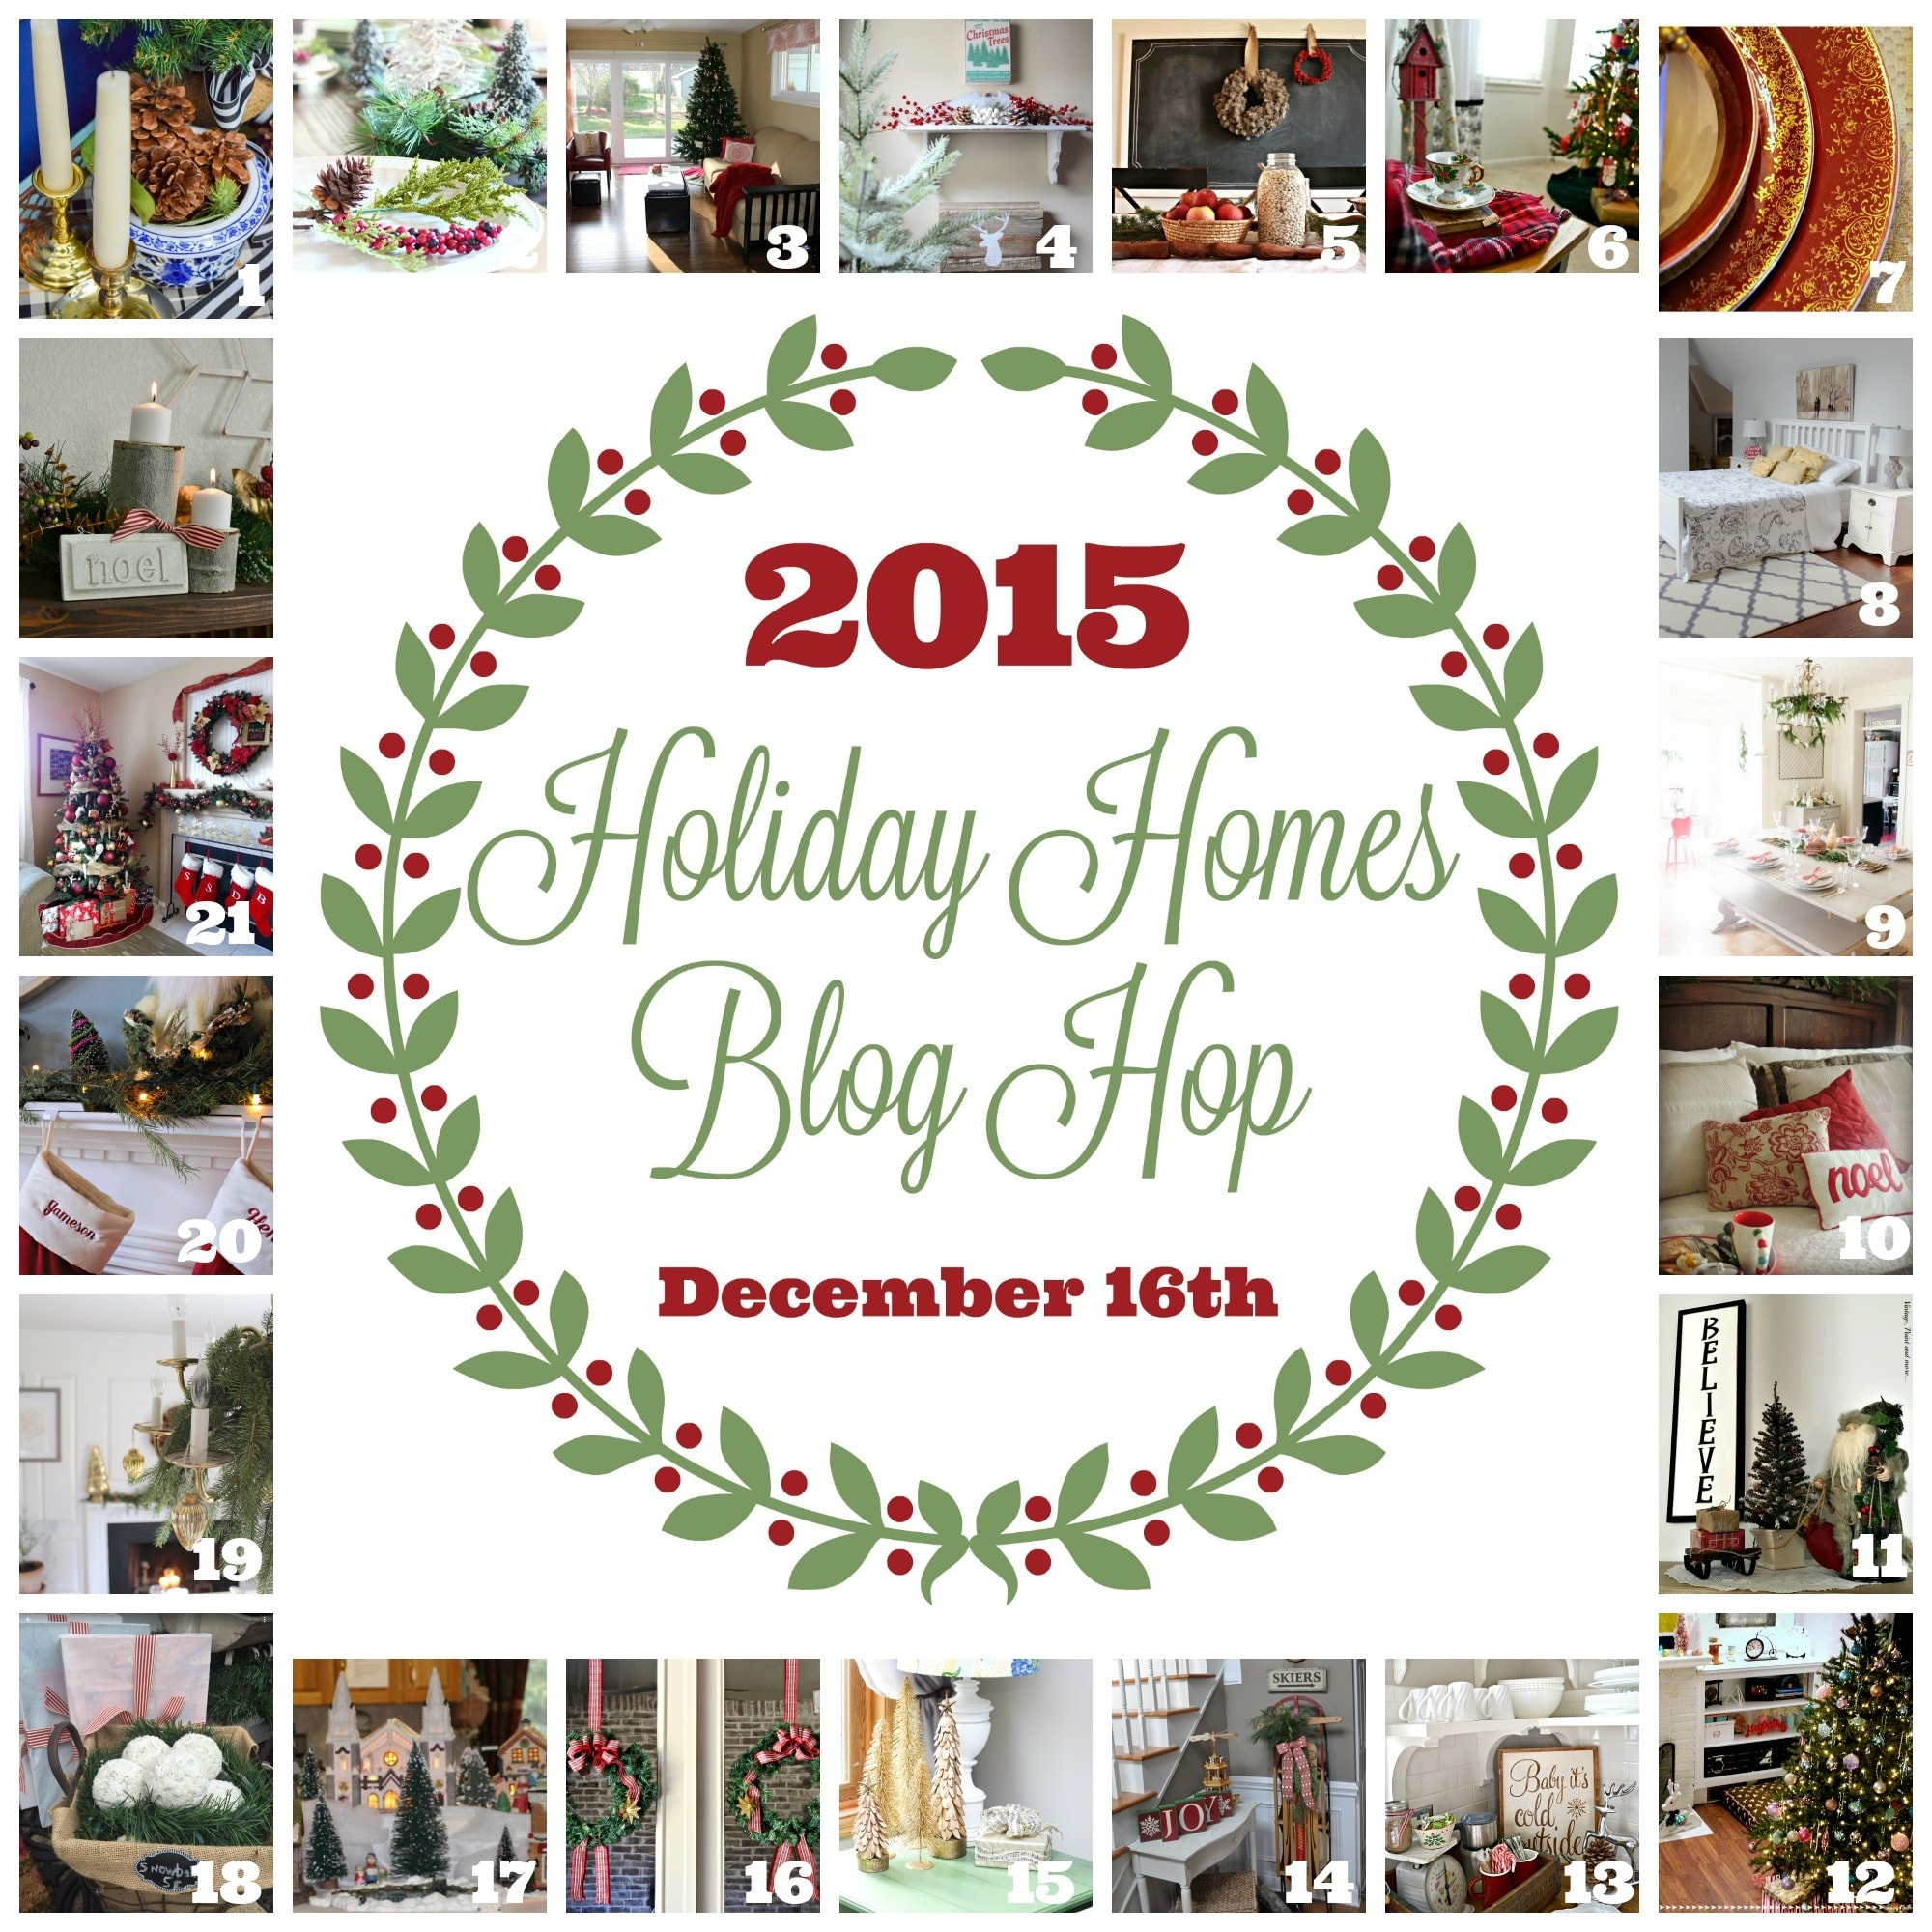 Holiday Home Hop - www.refashionablylate.com